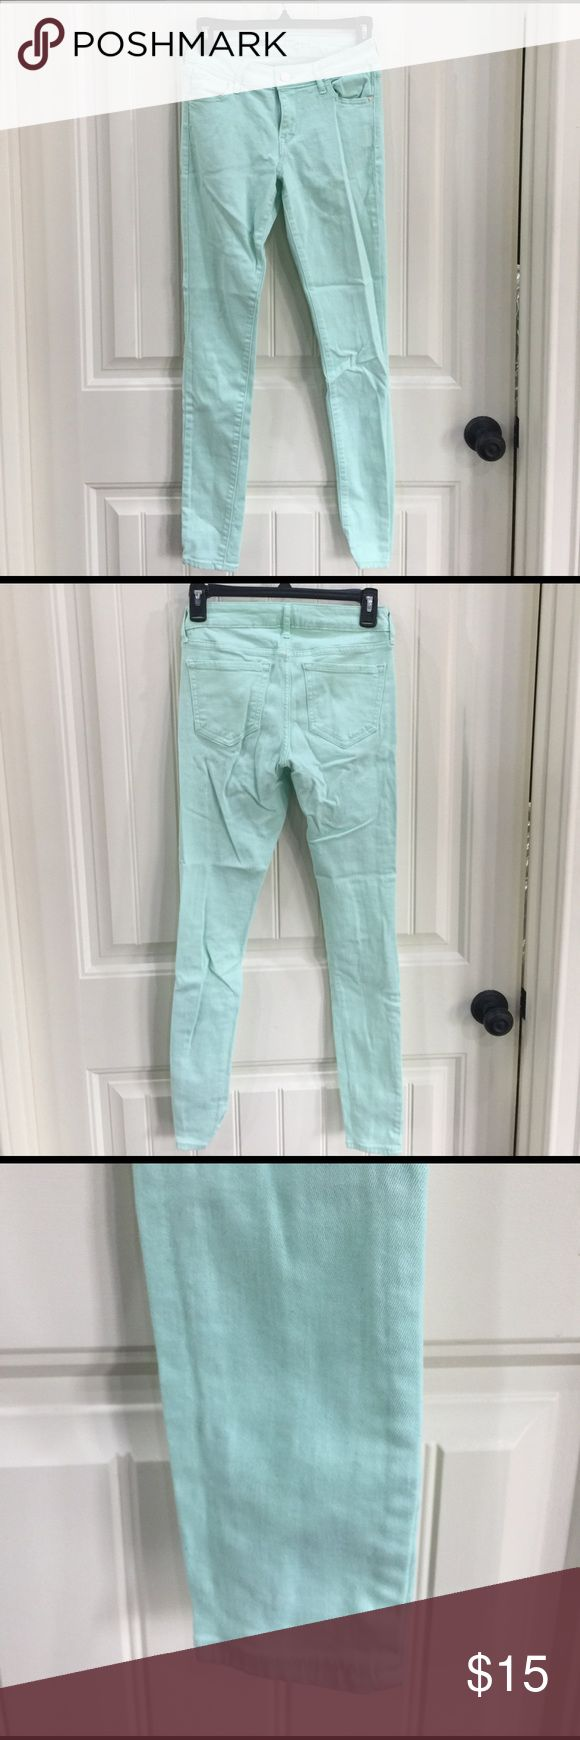 Old Navy Mint Green Skinny Jeans These Old Navy mint green skinny jeans are PERFECT for Spring! They are a tight fit all the way down, mid rise. Size 2 Old Navy Jeans Skinny